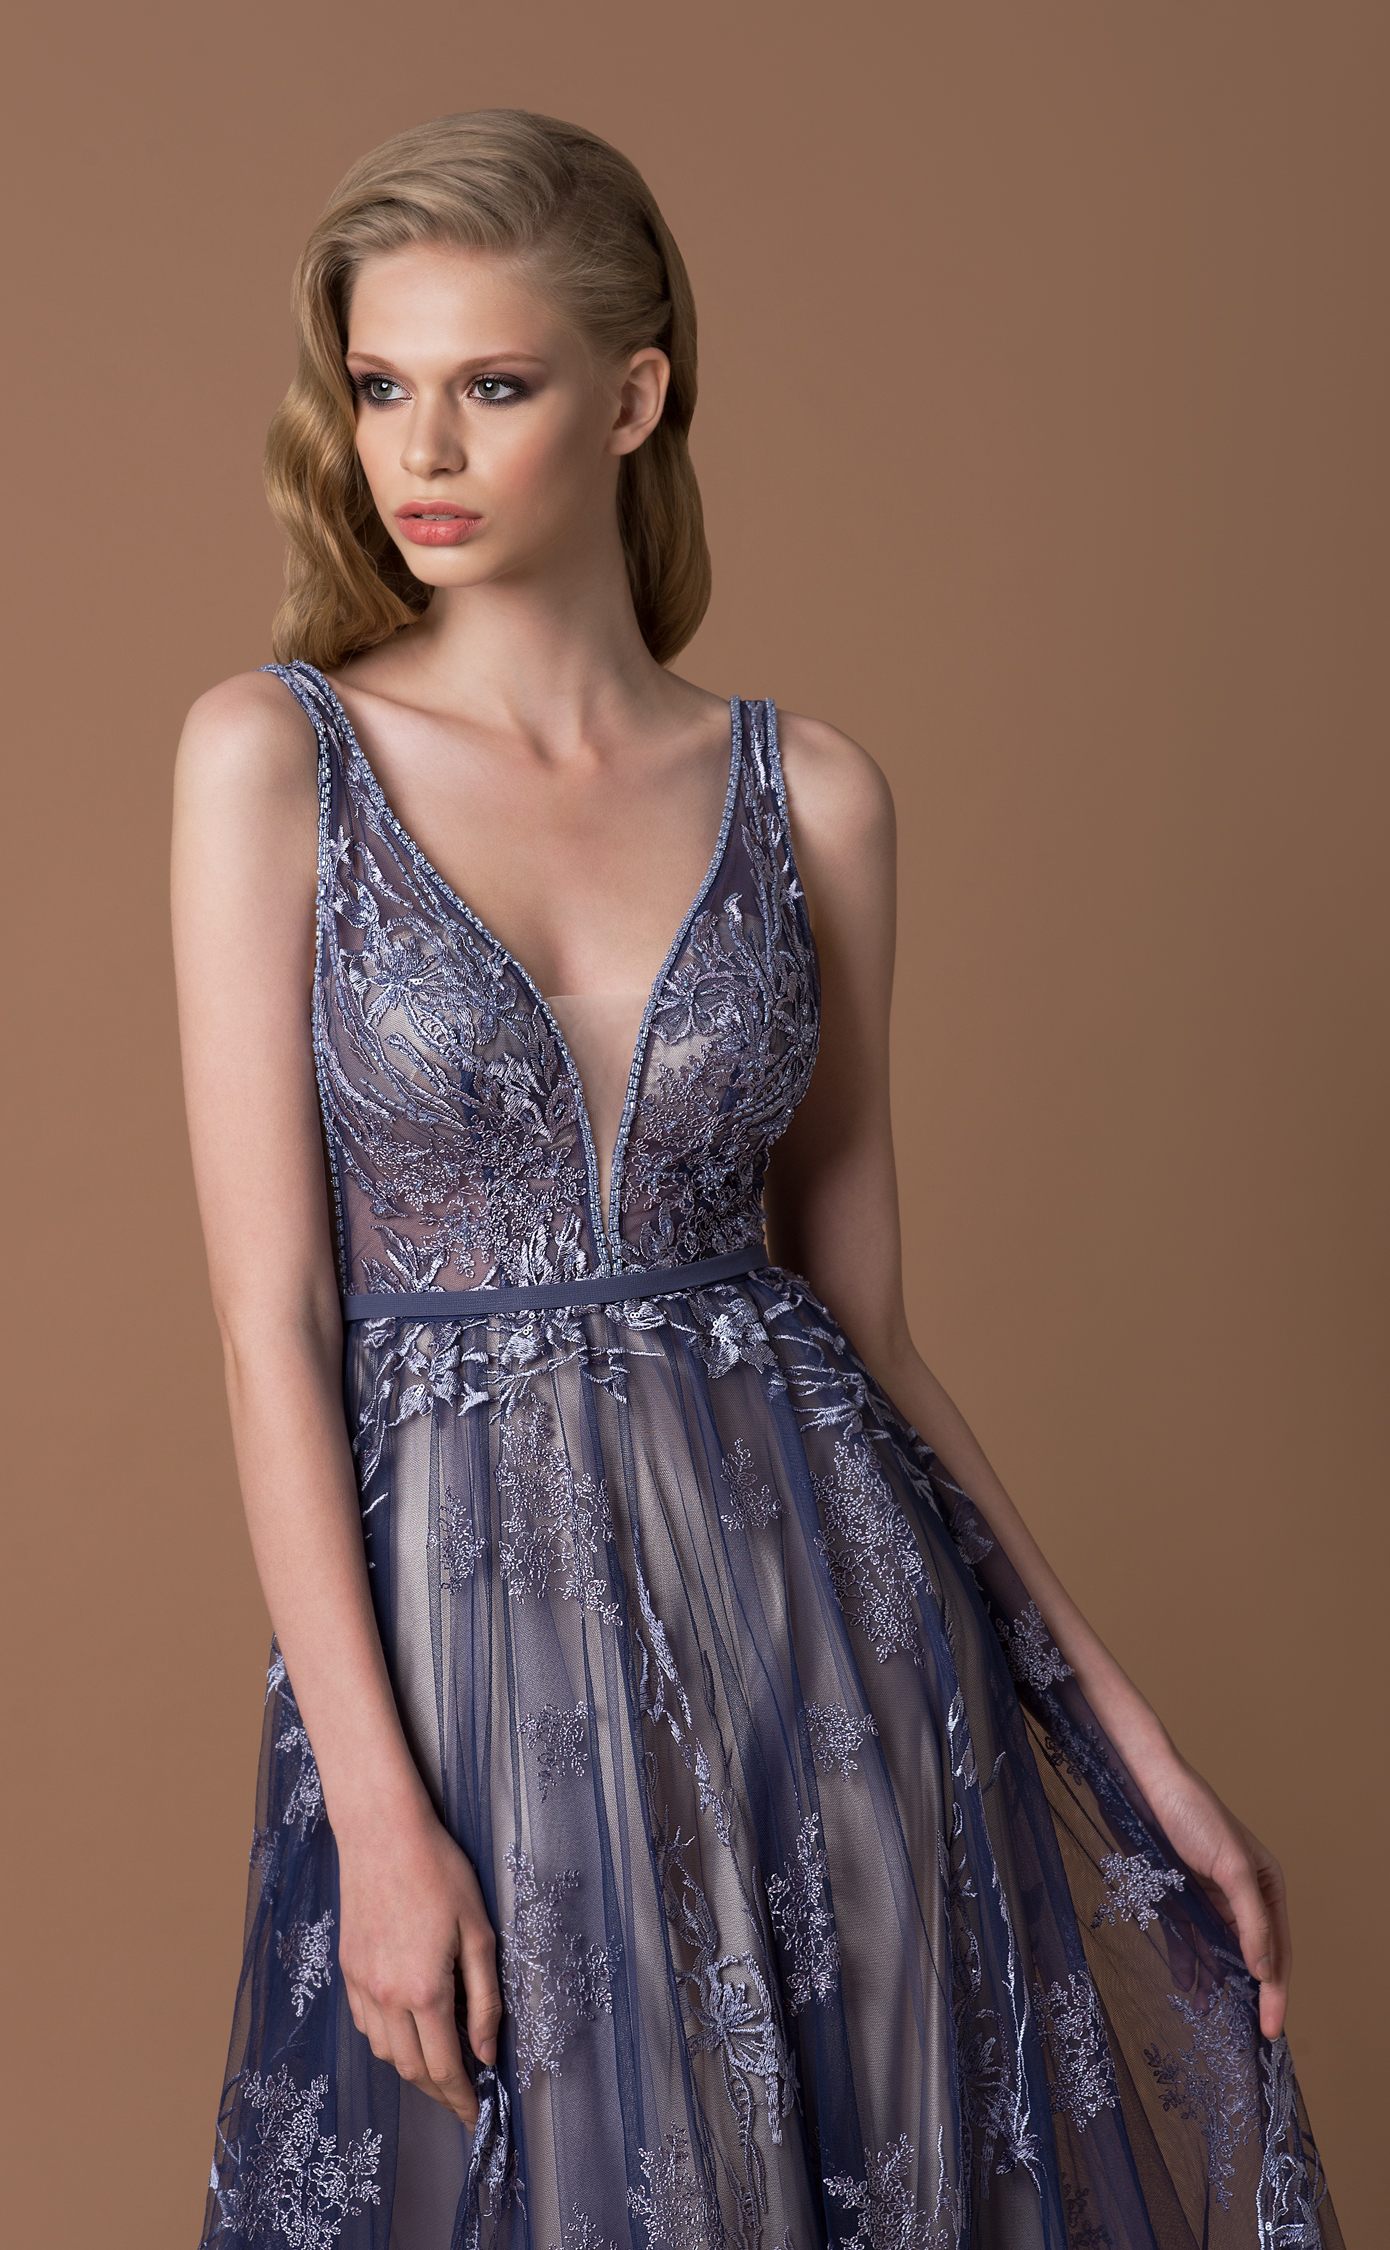 9b71fde926f8 Home / The Prom Gallery / Bridesmaid / Gino Cerruti Long Tulle Prom or  Bridesmaid Dress – 7027B Silver Blue